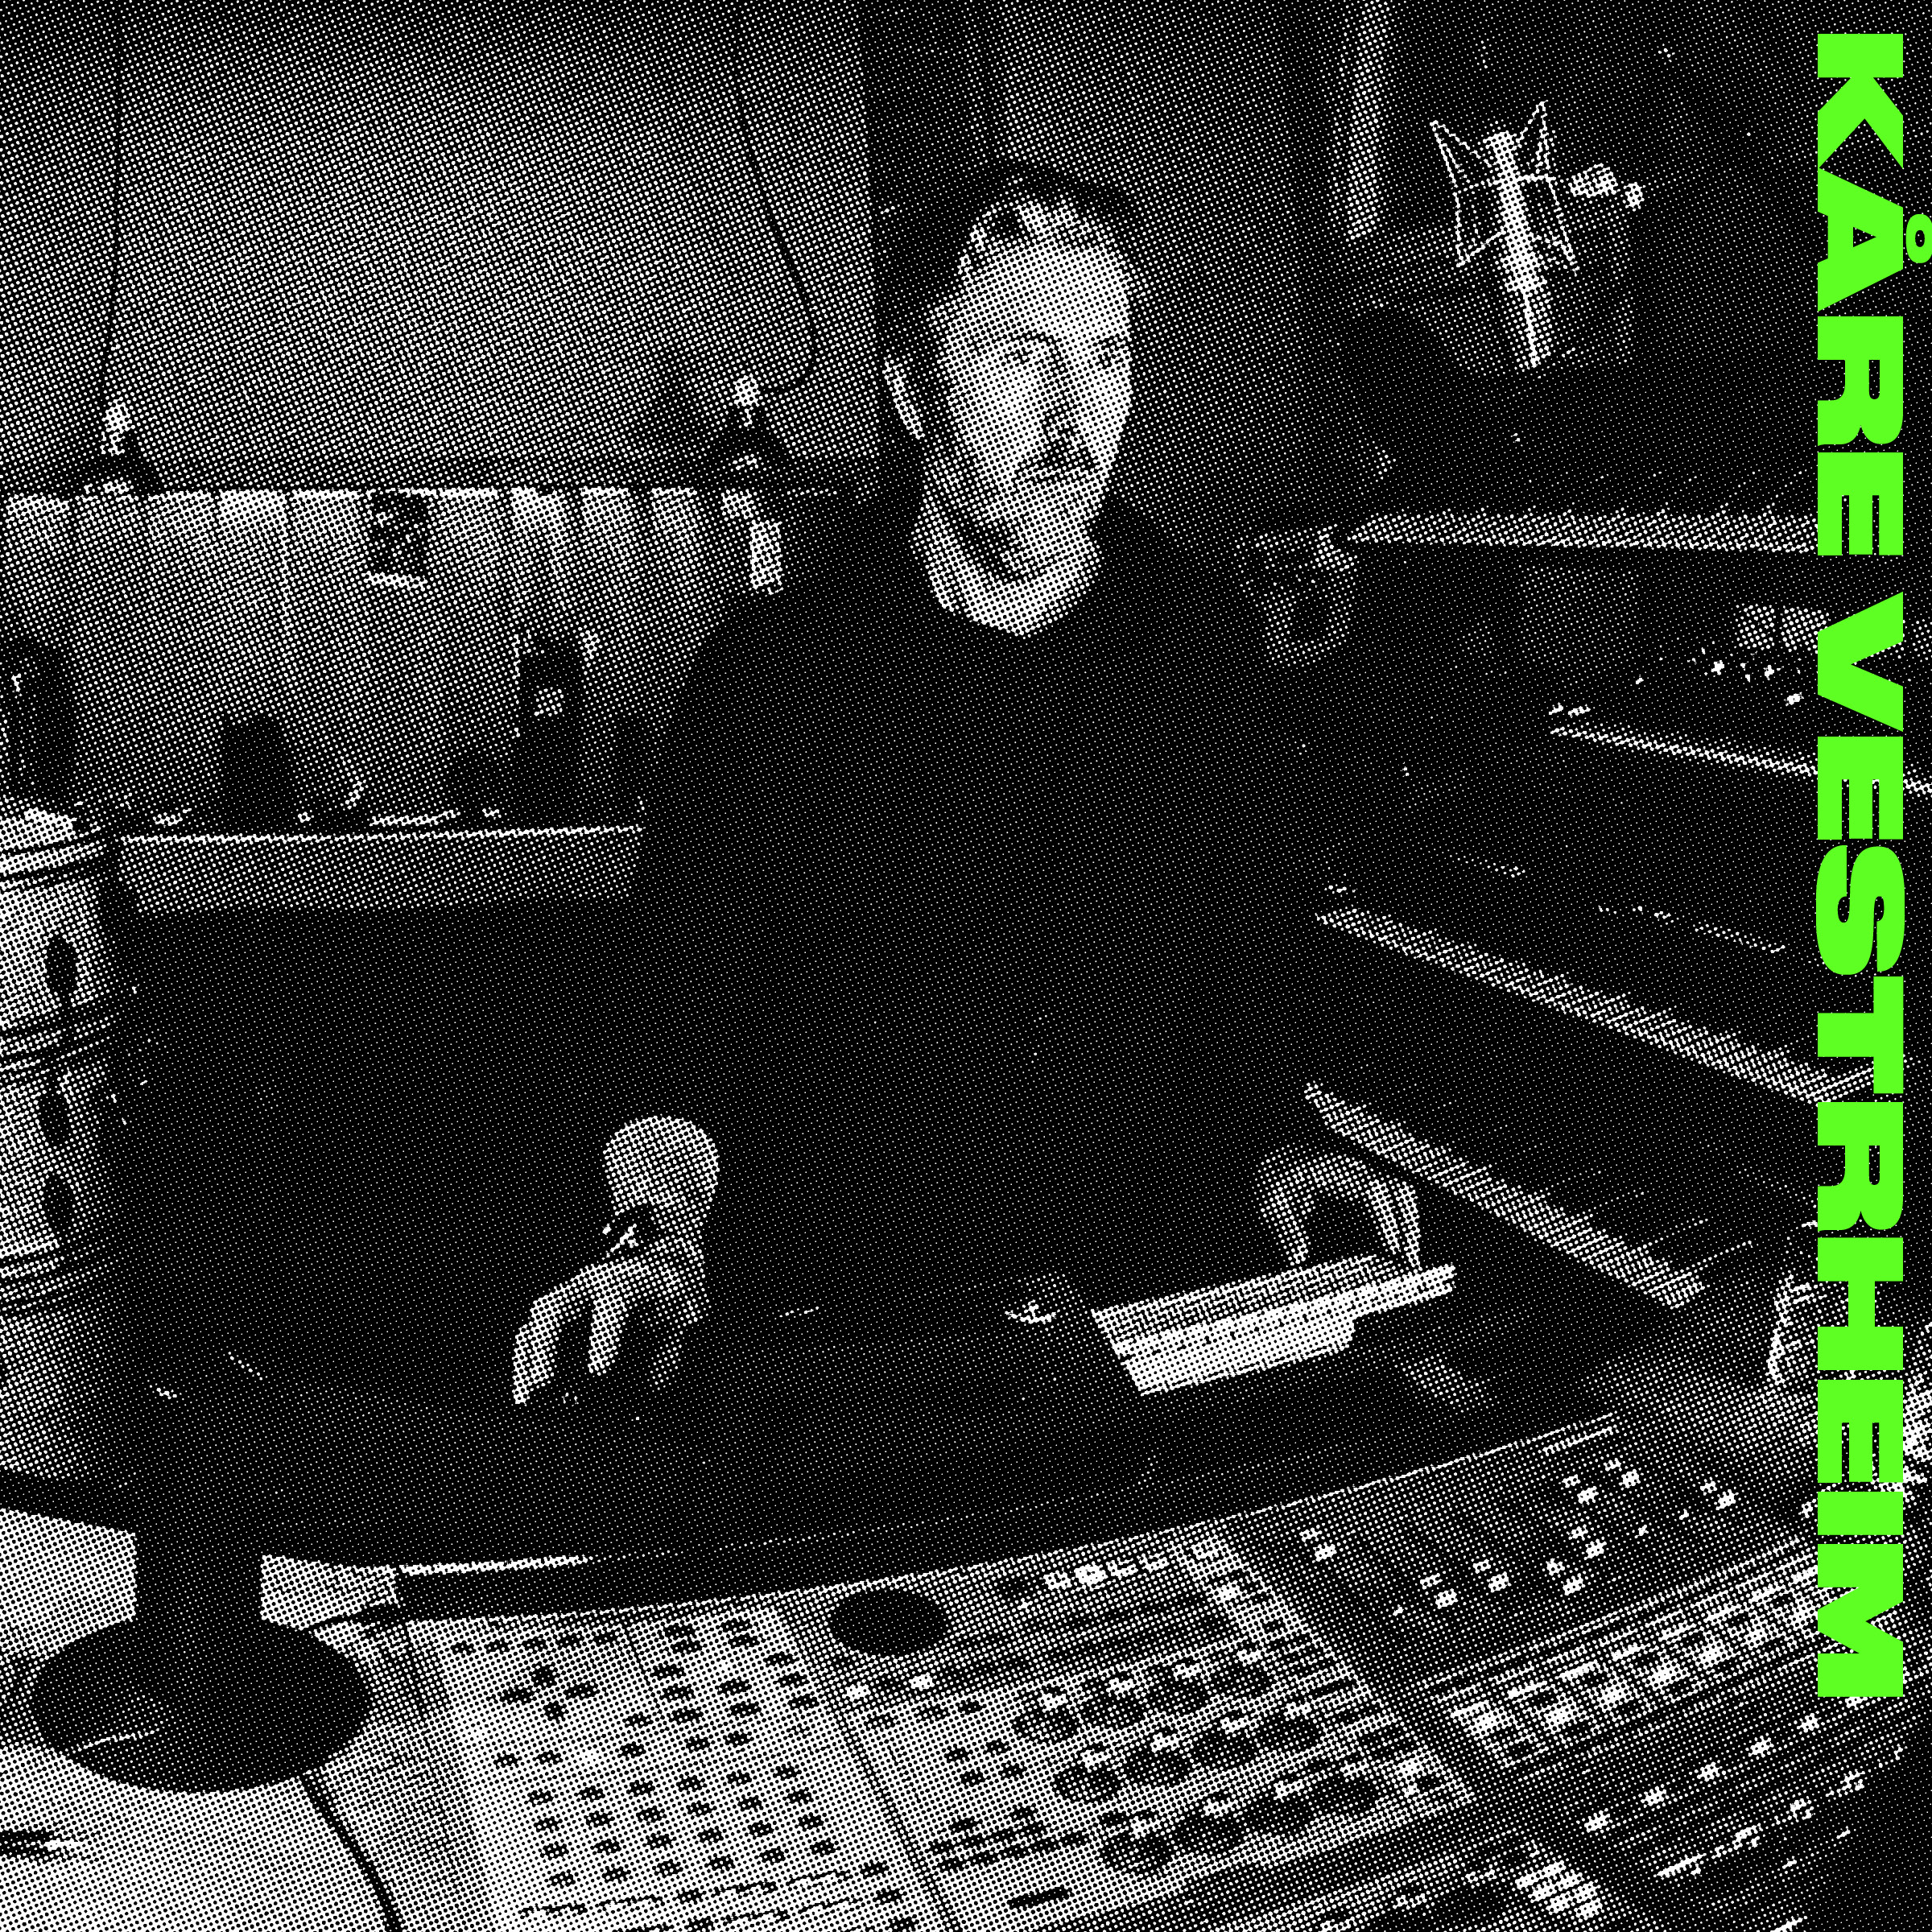 Kåre Vestrheim - Kåre Vestrheim is a well known name within the Norwegian music scene. He started his musical career with the rock band Locomotives in the 90s and has since established himself as a very capable musician, film composer and producer. In his studio Propeller Music Division (which also has an associated record label) he has produced records for Emilie Nicolas, Highasakite, Motorpsycho, Marit Larsen and countless many more artists.